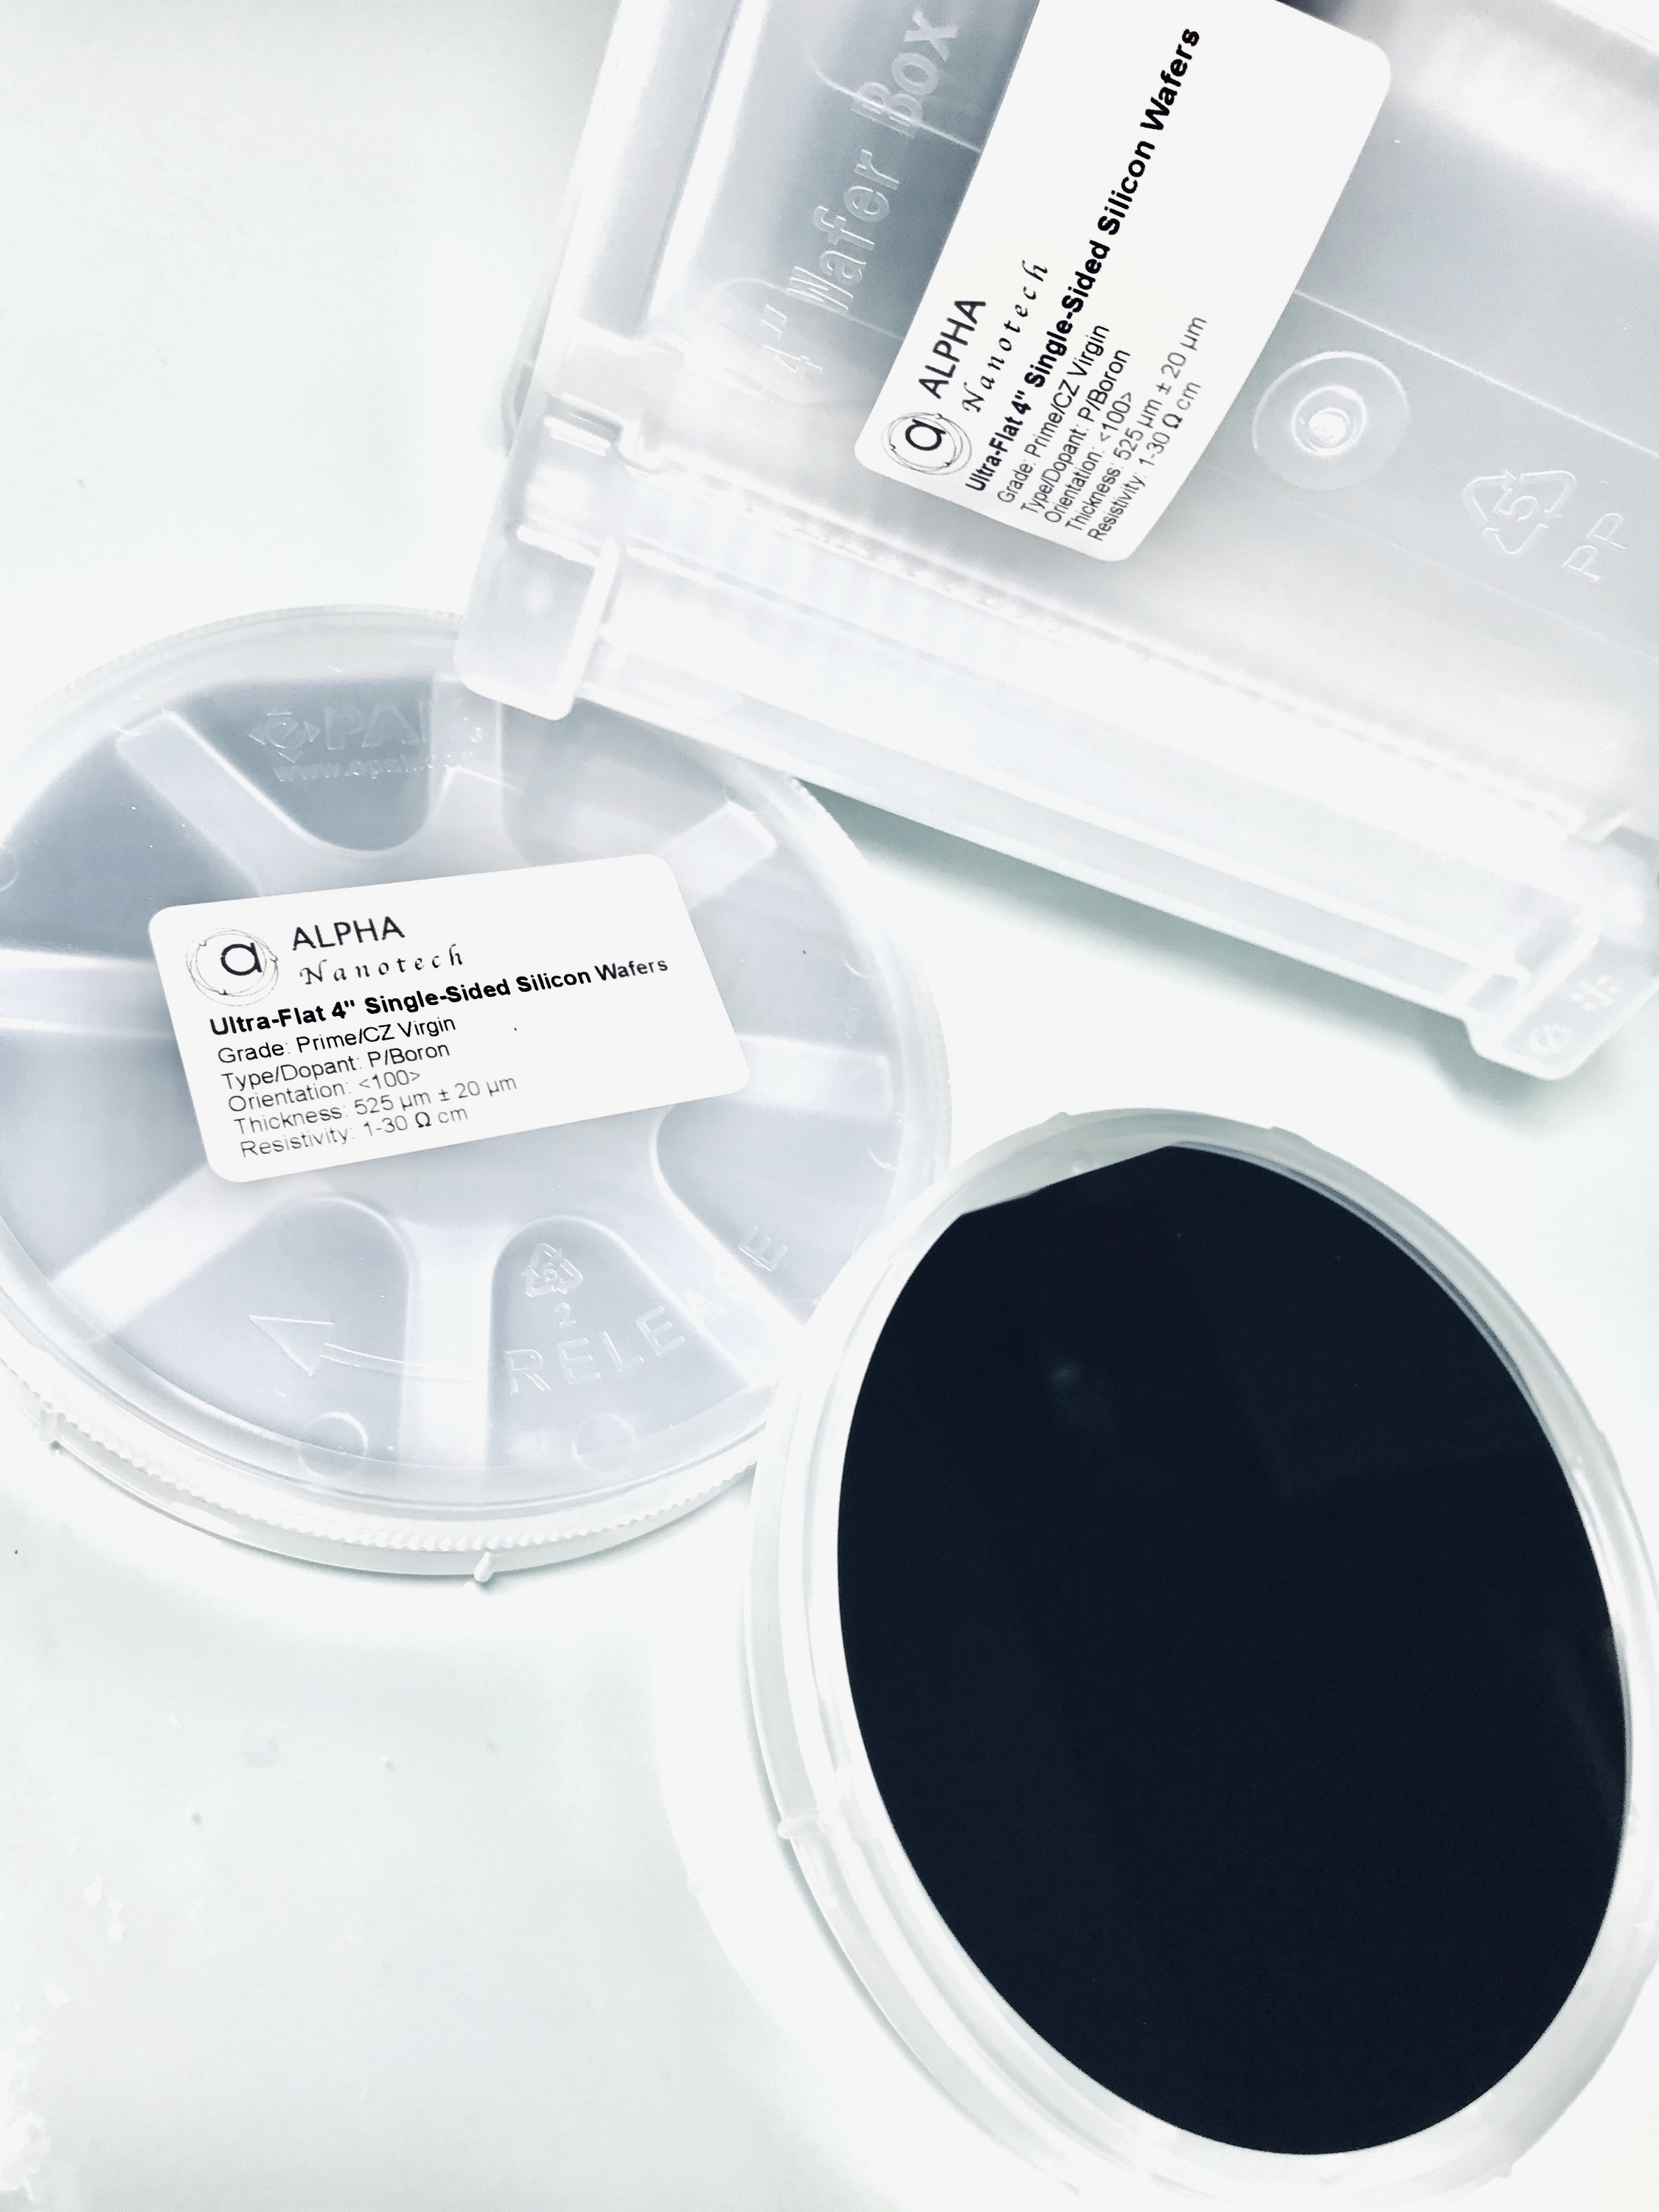 4 inches silicon wafer